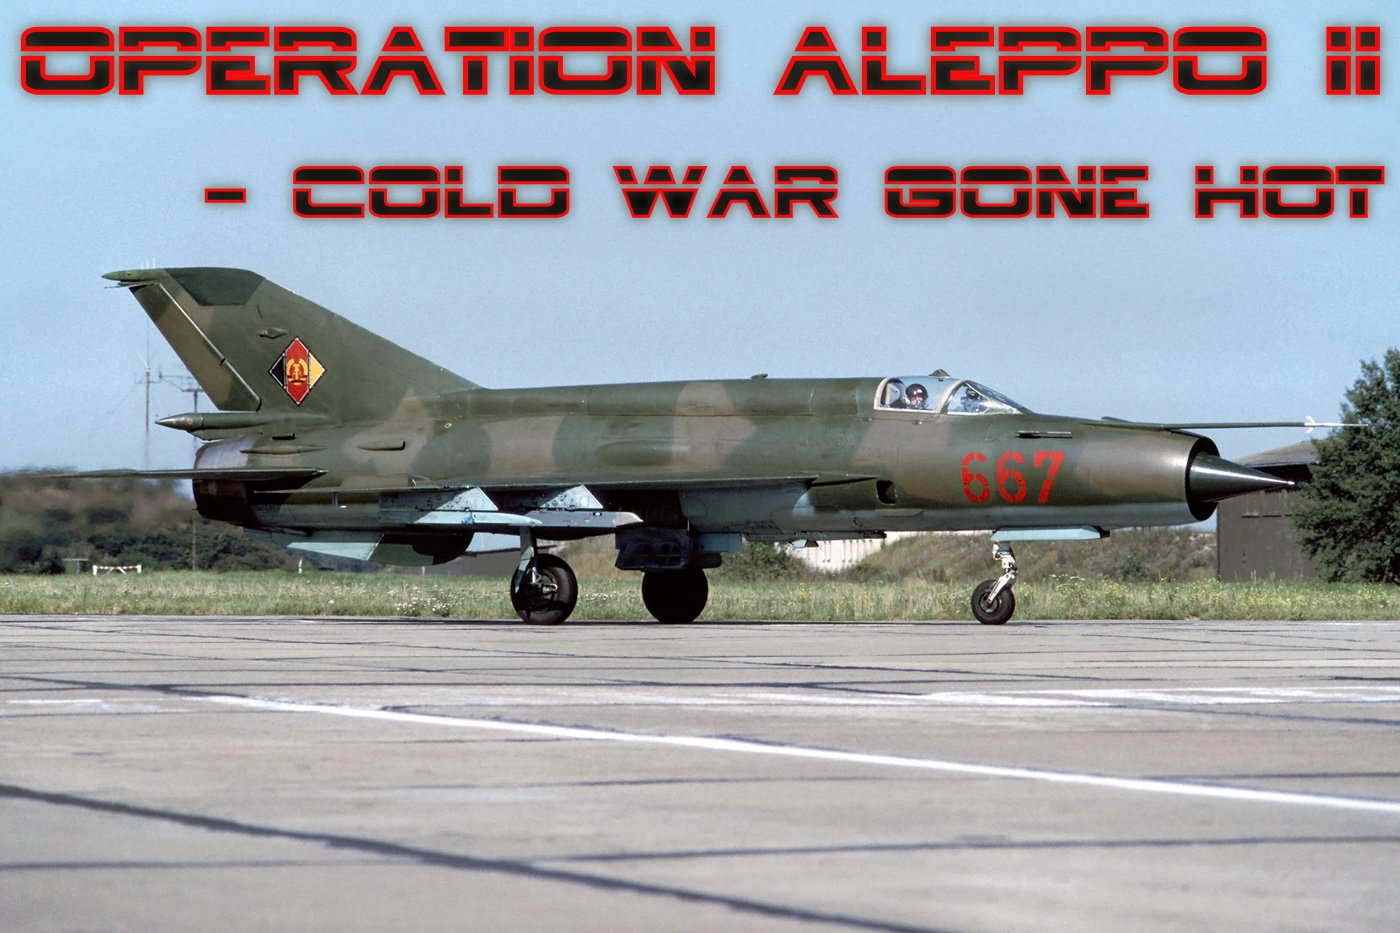 Operation Aleppo II - Cold War Gone Hot!